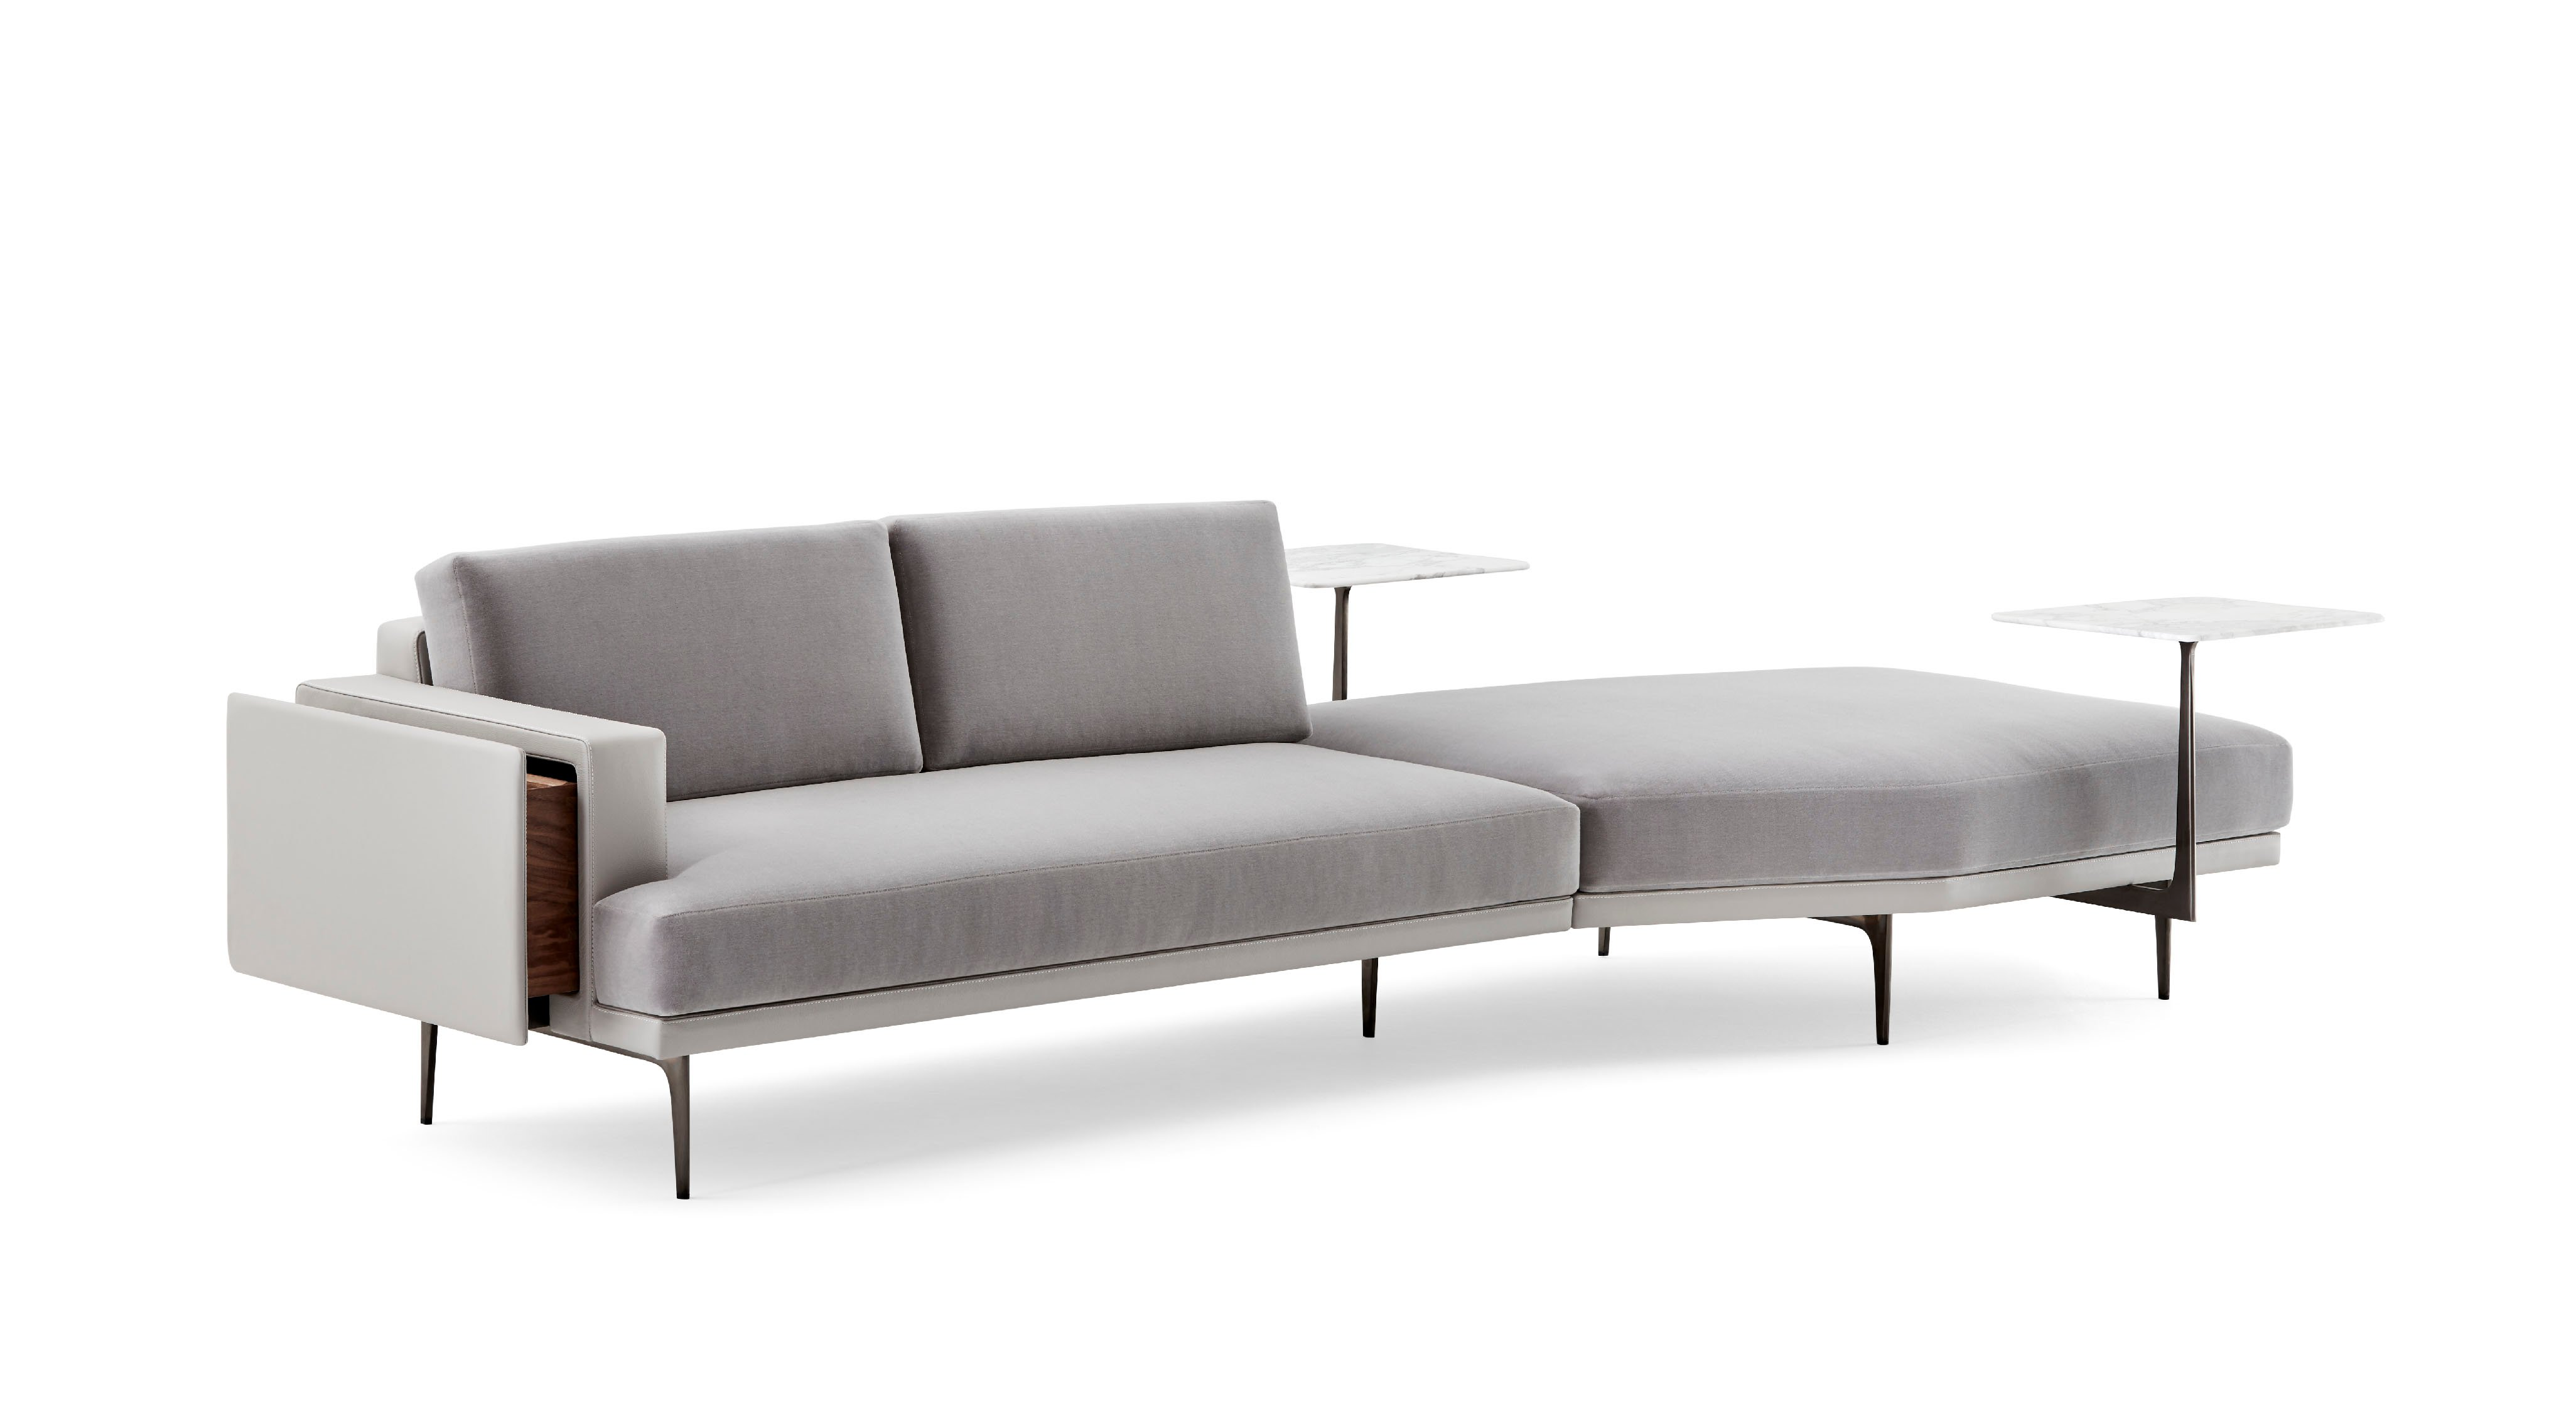 The Lyda sofa, designed for Haworth, has steel arms and a marble tablet surface.